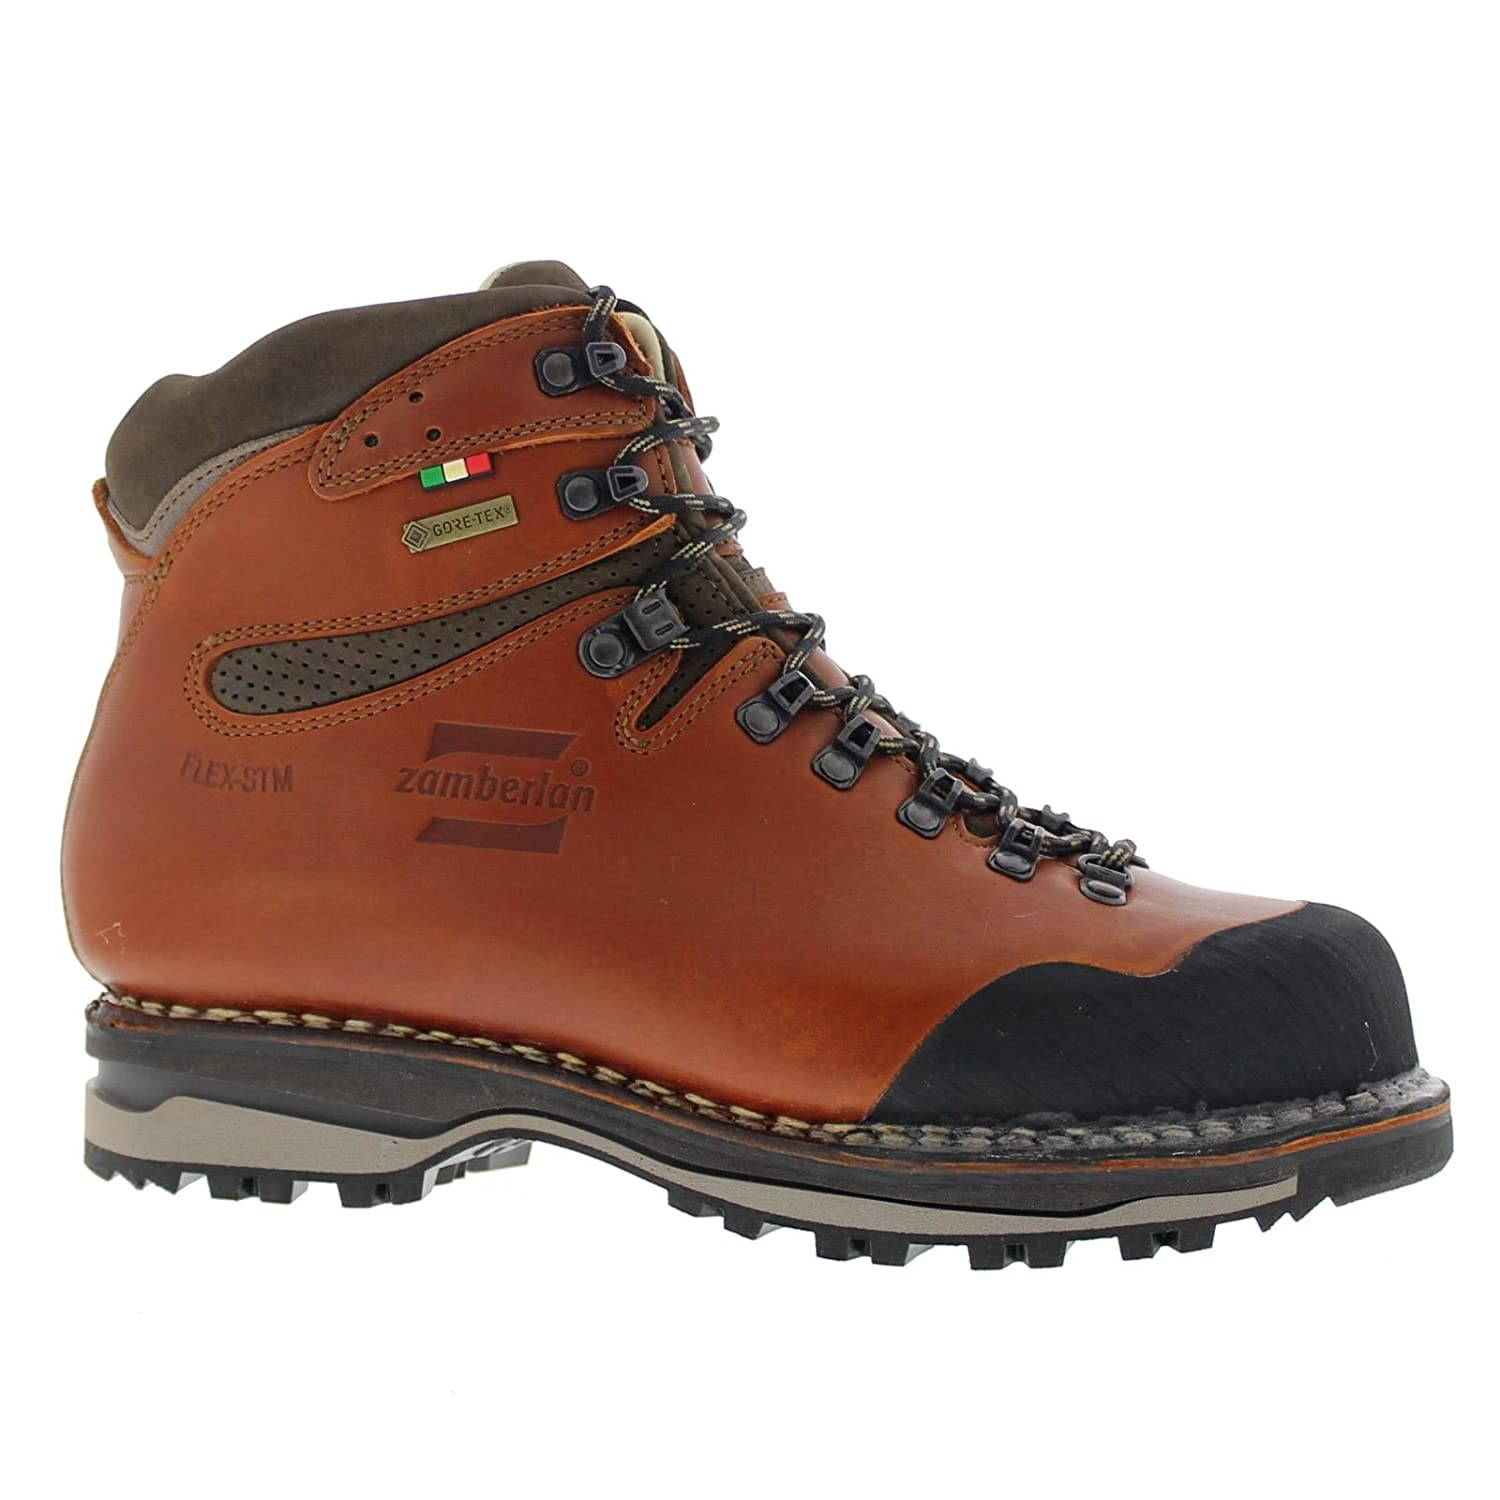 b9c2e612120 Zamberlan Men's 1025 Tofane NW GT RR Hiking Boot